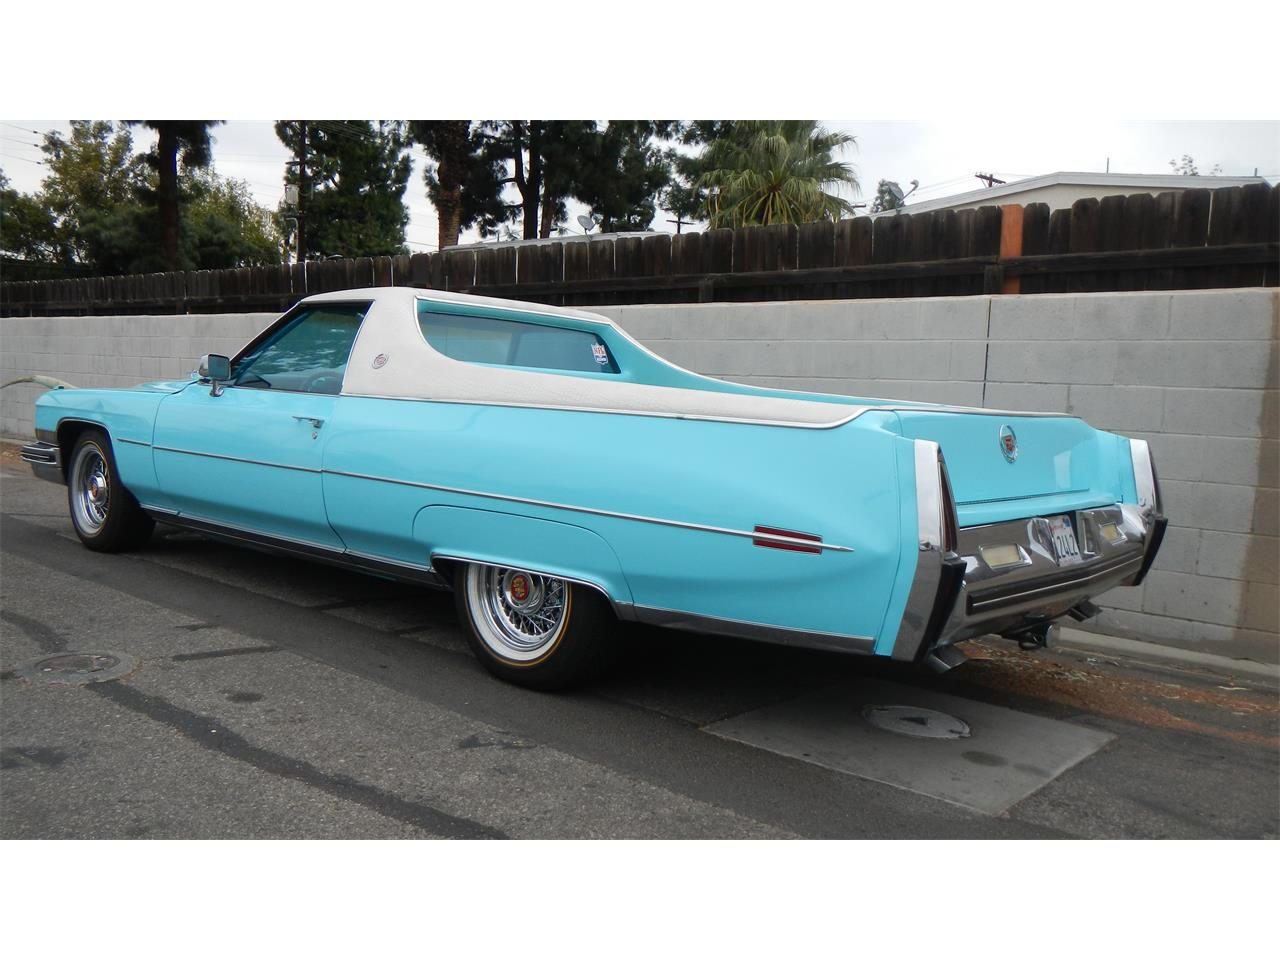 1973 Cadillac Eldorado for sale in Woodland Hills, CA – photo 8